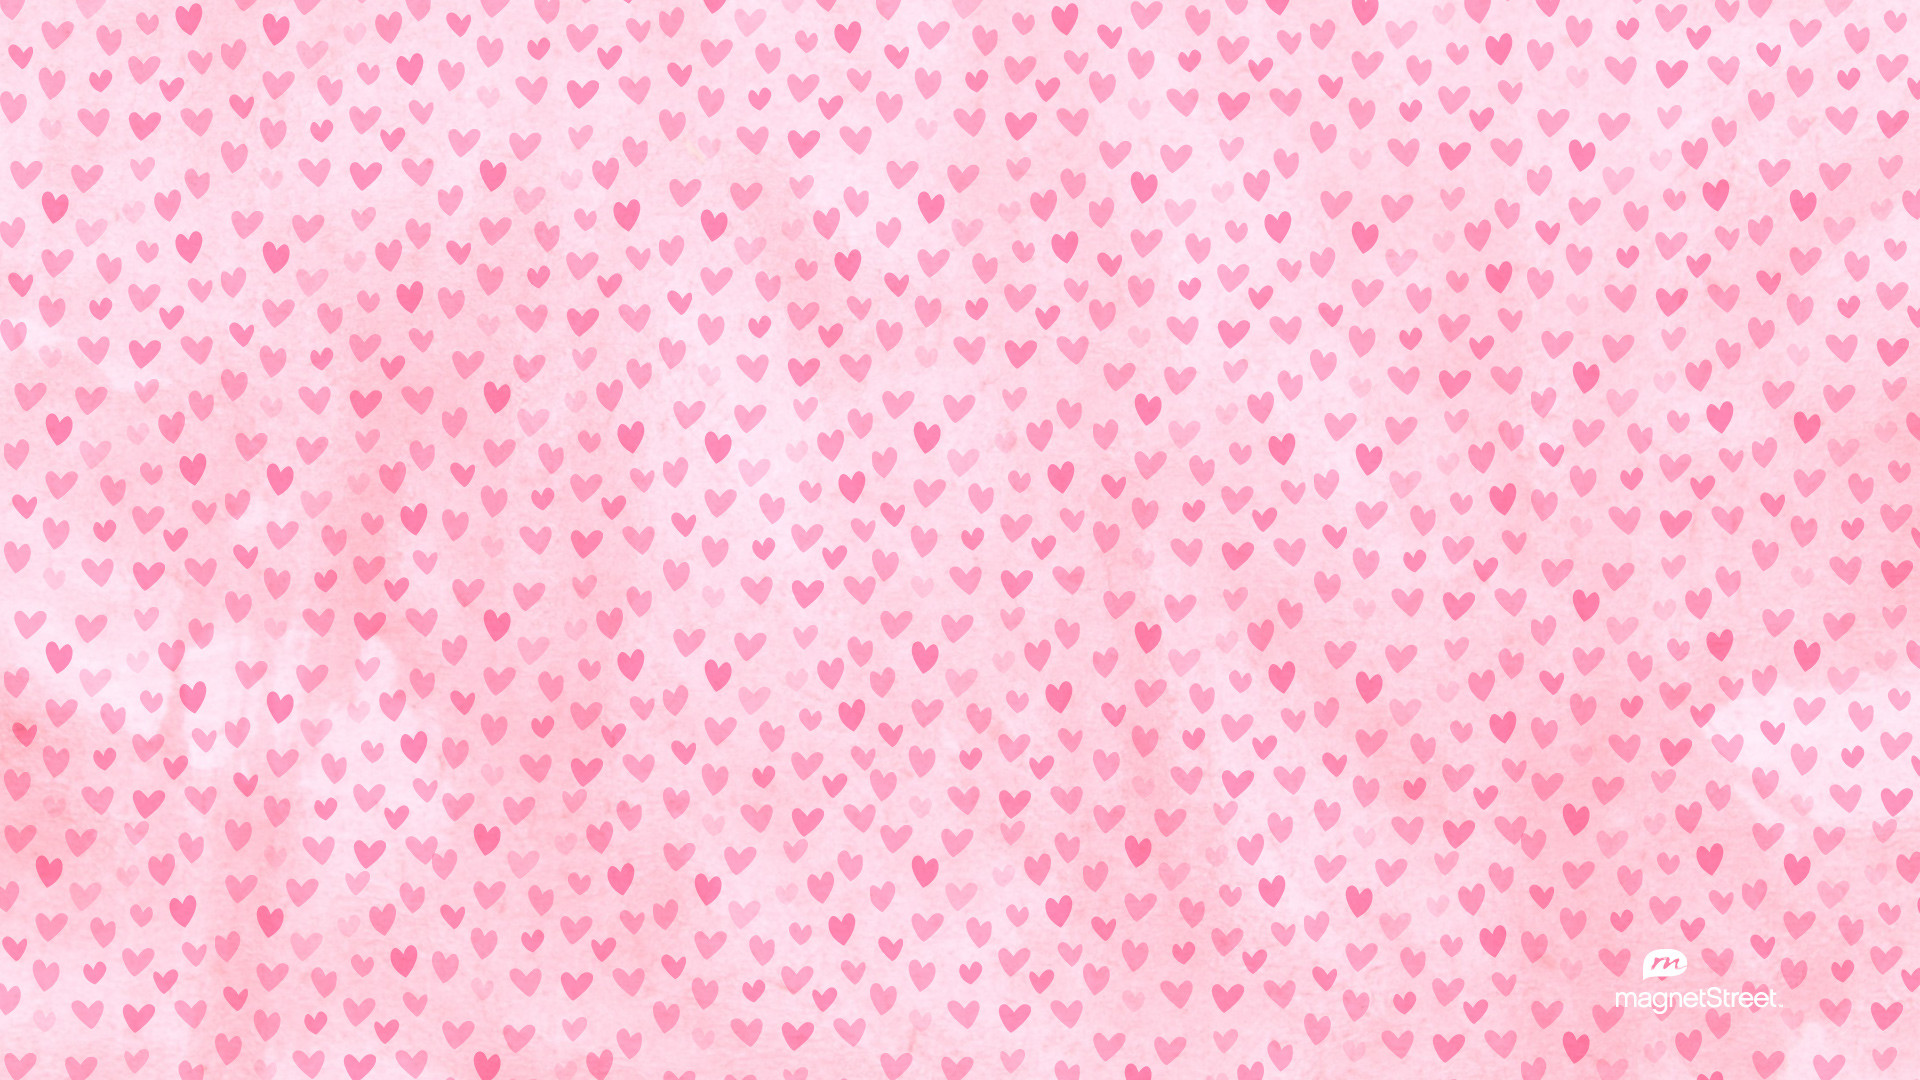 Hearts wallpaper background 63 images - Heart to heart wallpaper ...